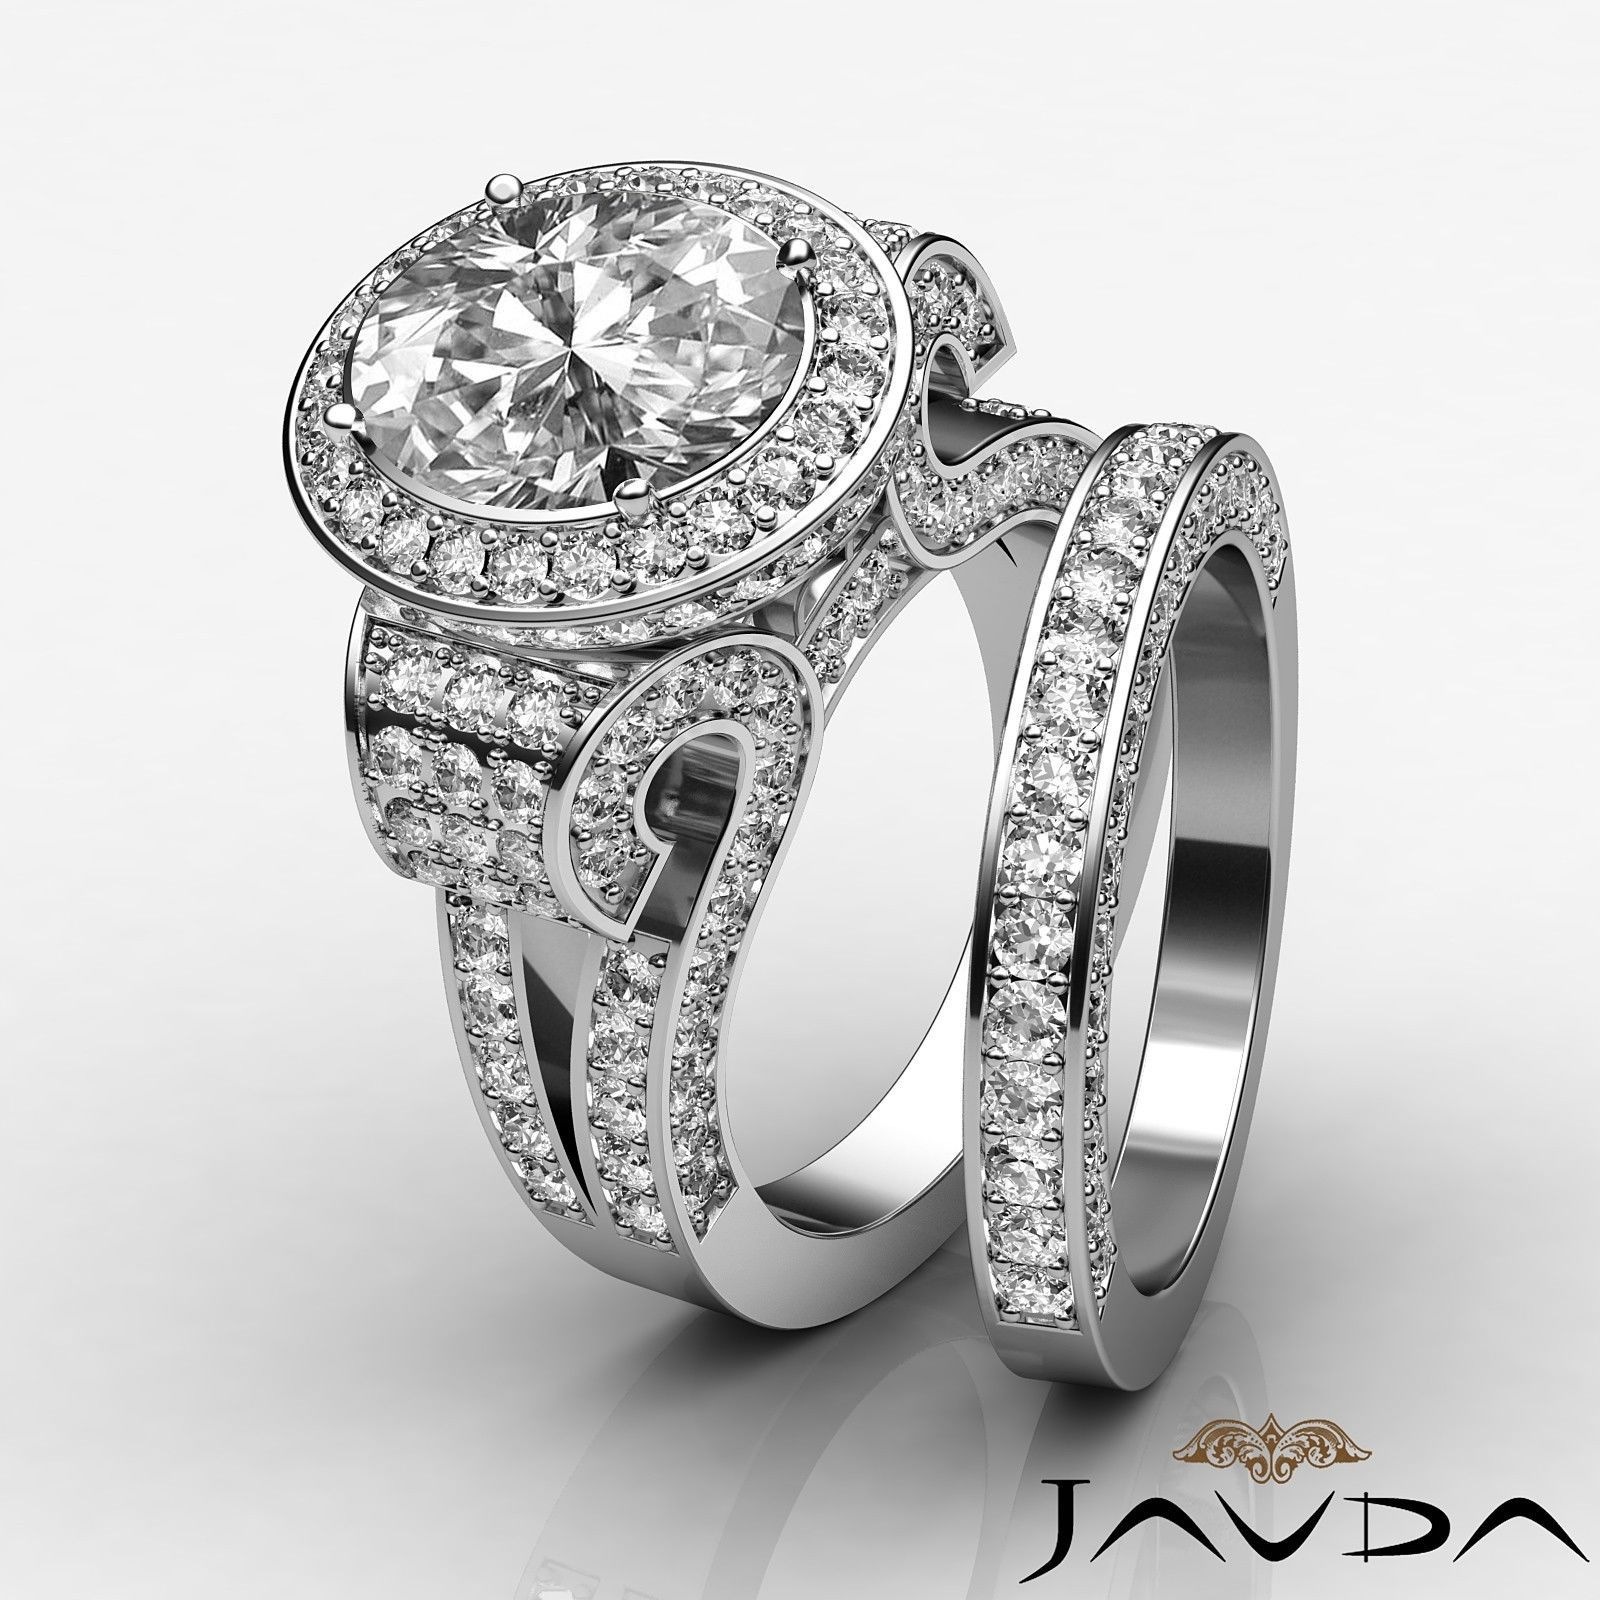 Oval Diamond Vintage Engagement GIA F VS2 14k White Gold Bridal Set Ring 4 8 Ct | eBay